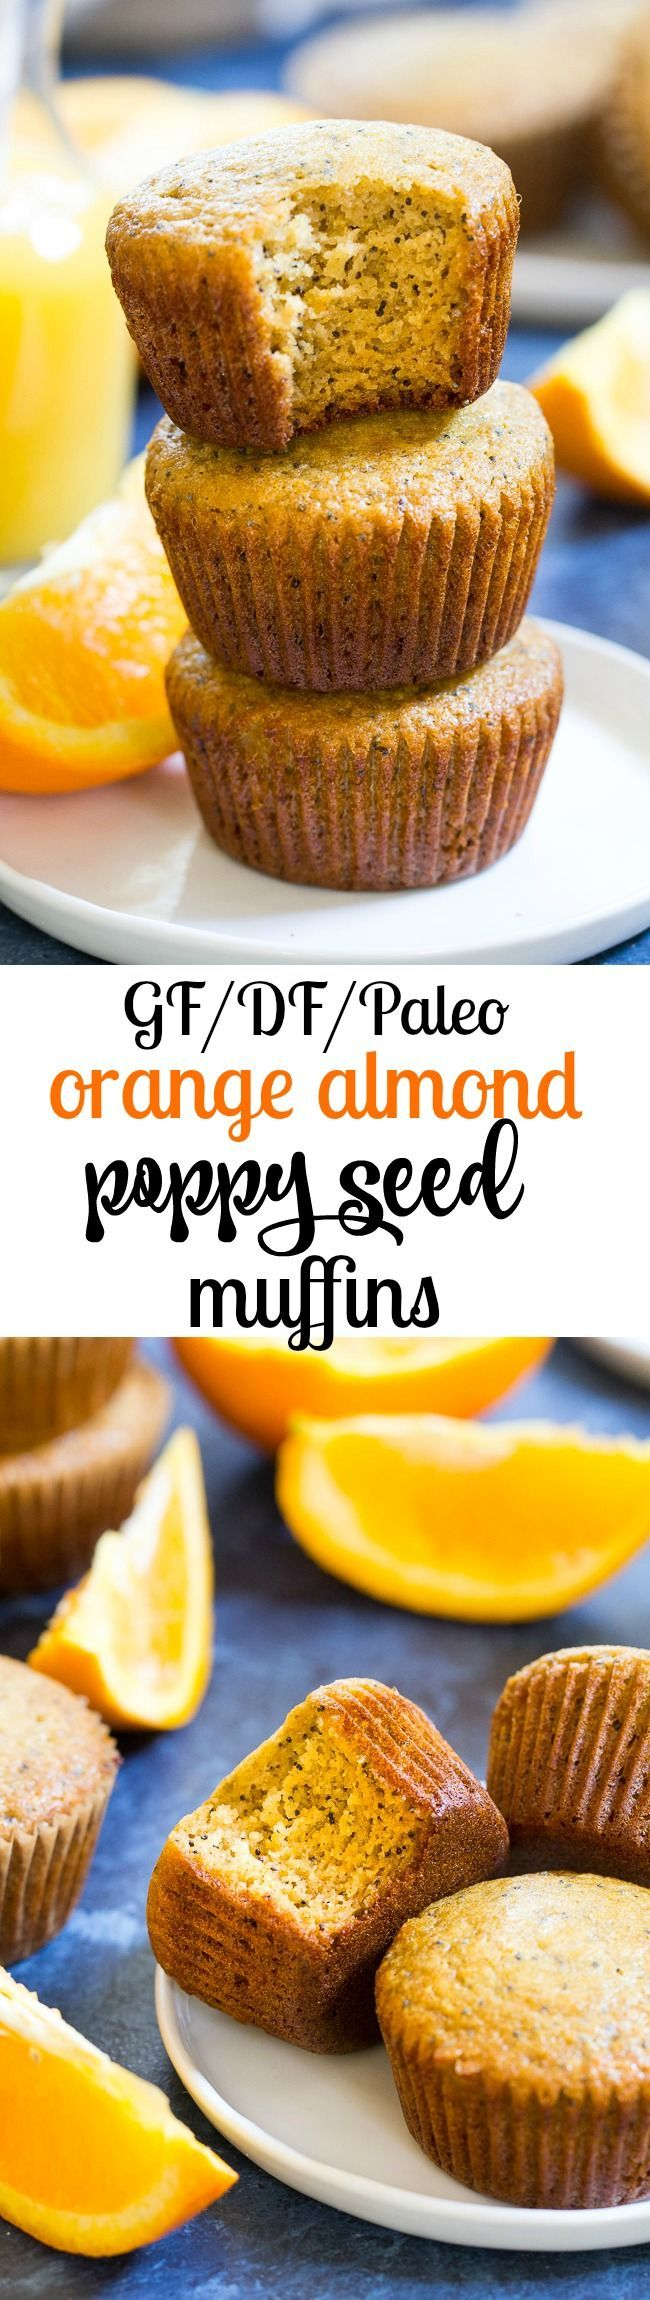 These orange almond poppy seed muffins are the perfect sweet addition to your breakfast and make great snacks too. Perfectly moist, sweet and packed with flavor and a hint of spice, you won't believe they're gluten free, dairy free, and paleo!